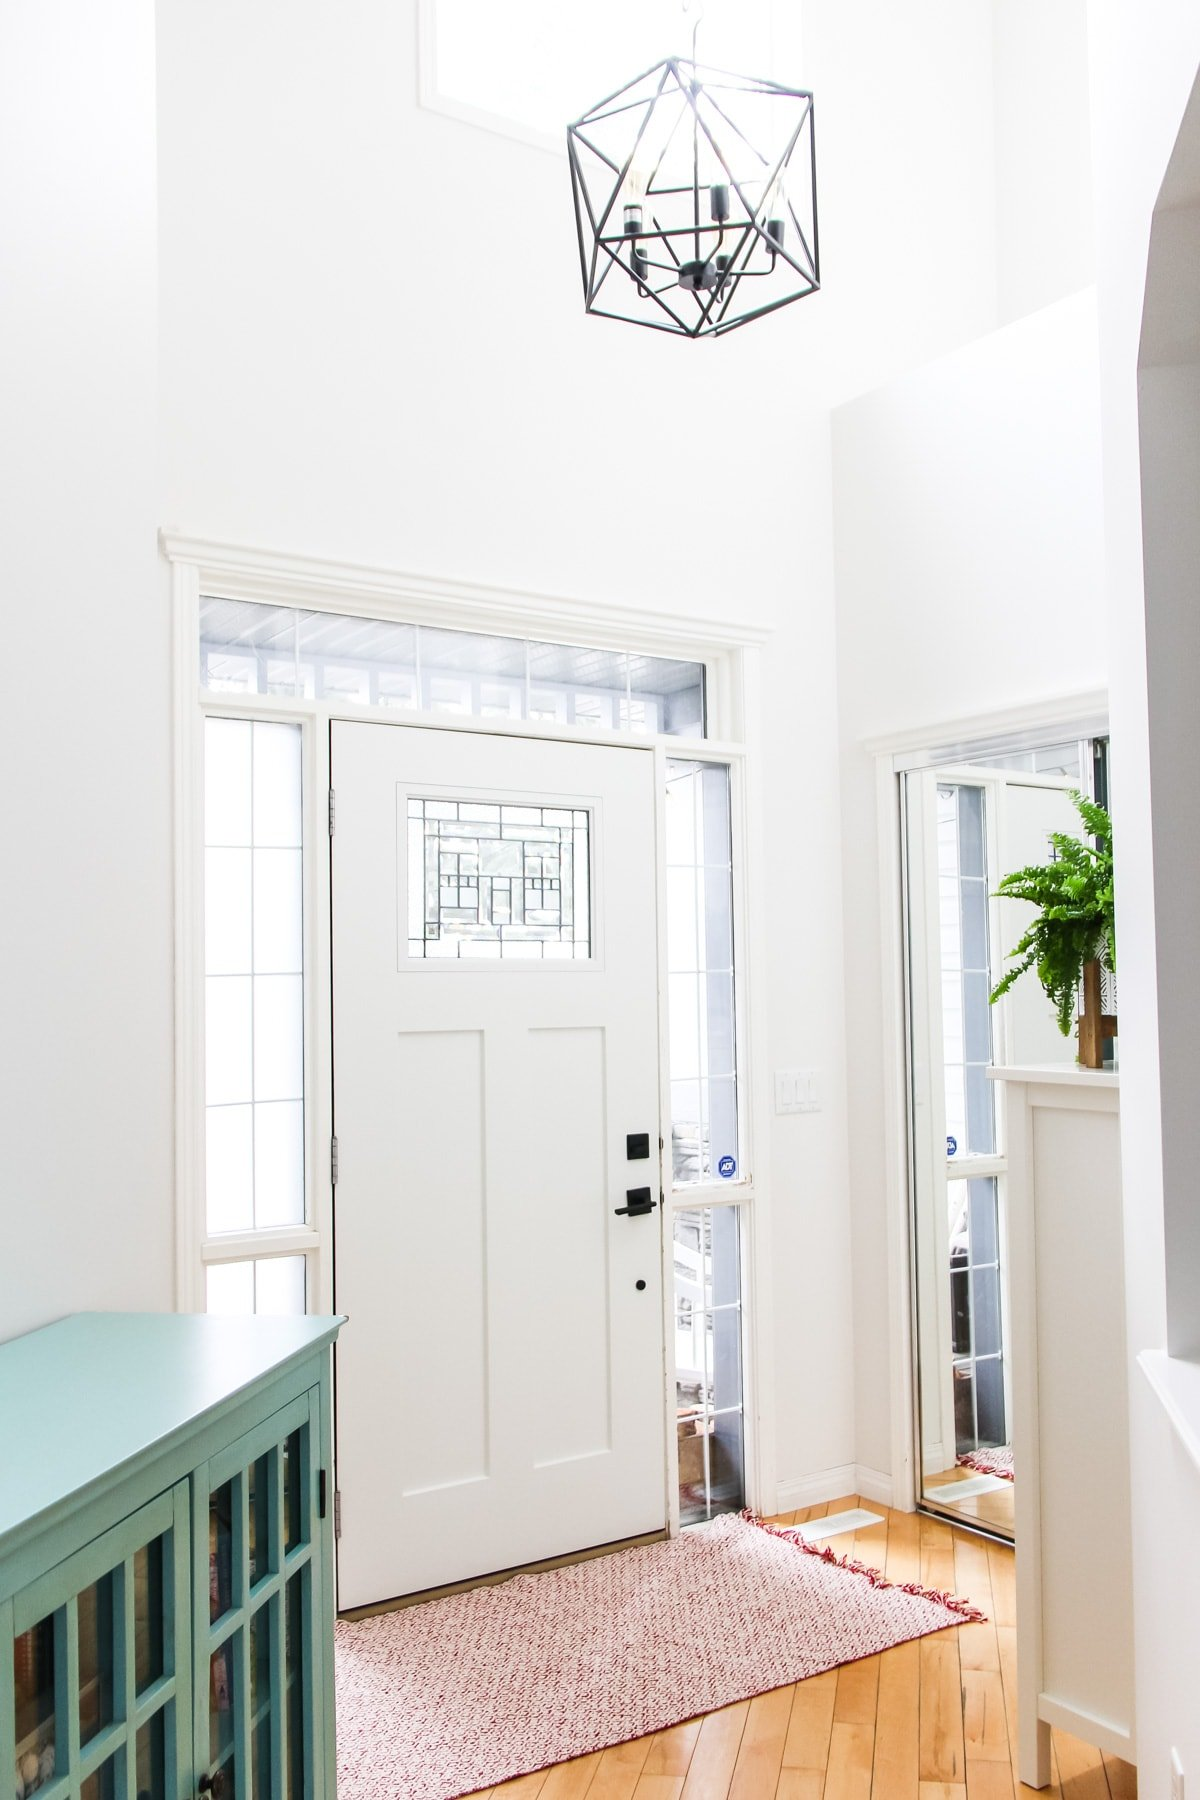 an image of an entryway on the inside of a home. there is a white craftsman door, a black cage light hanging from the ceiling, a pink rug and a green fern